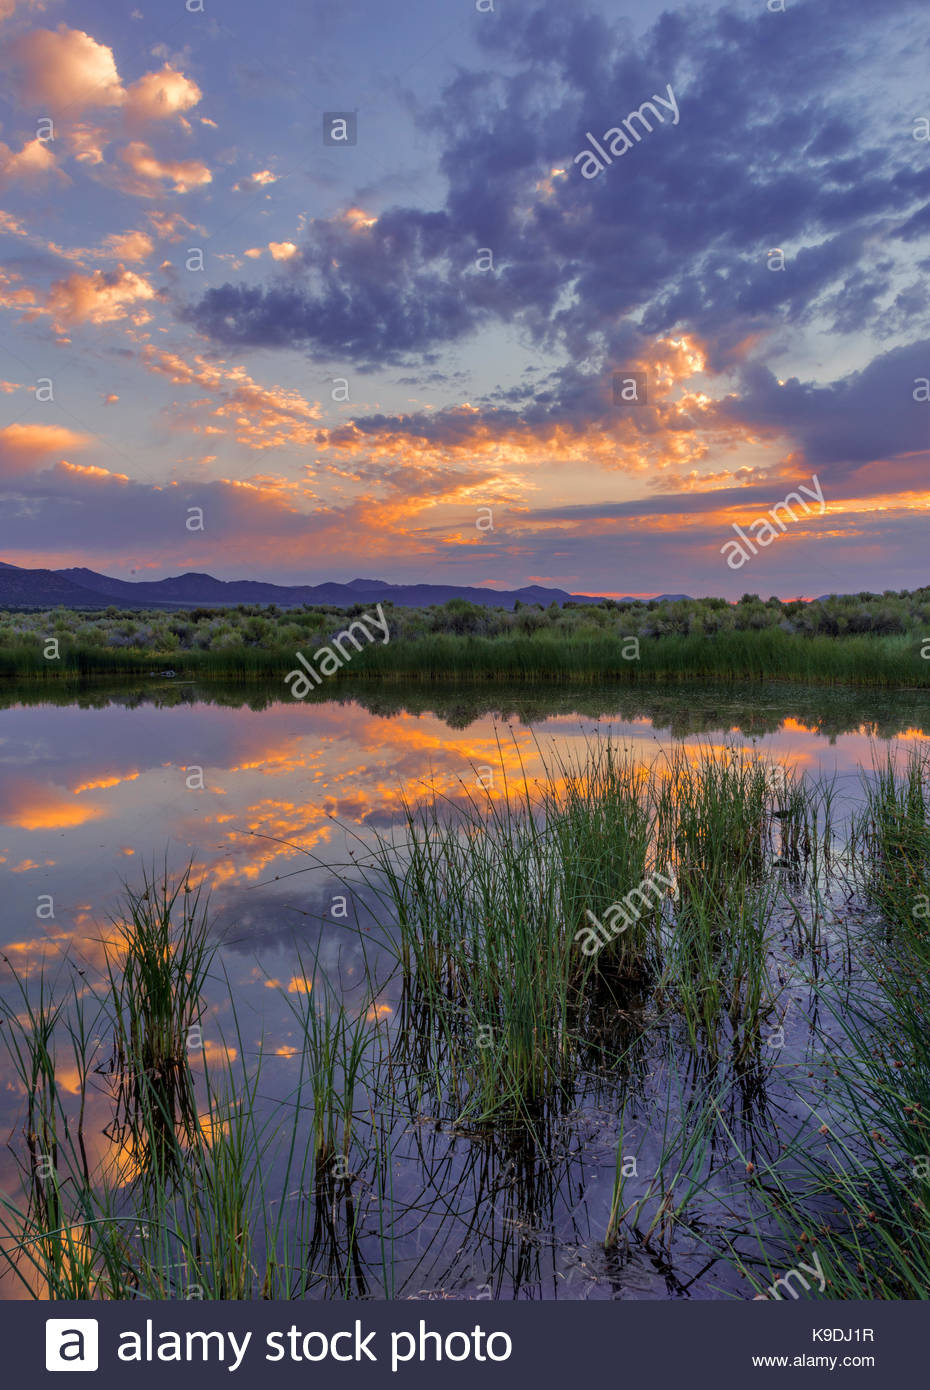 Dechambeau Ponds at Dawn, Mono Basin National Forest Scenic Area, California - Stock Image